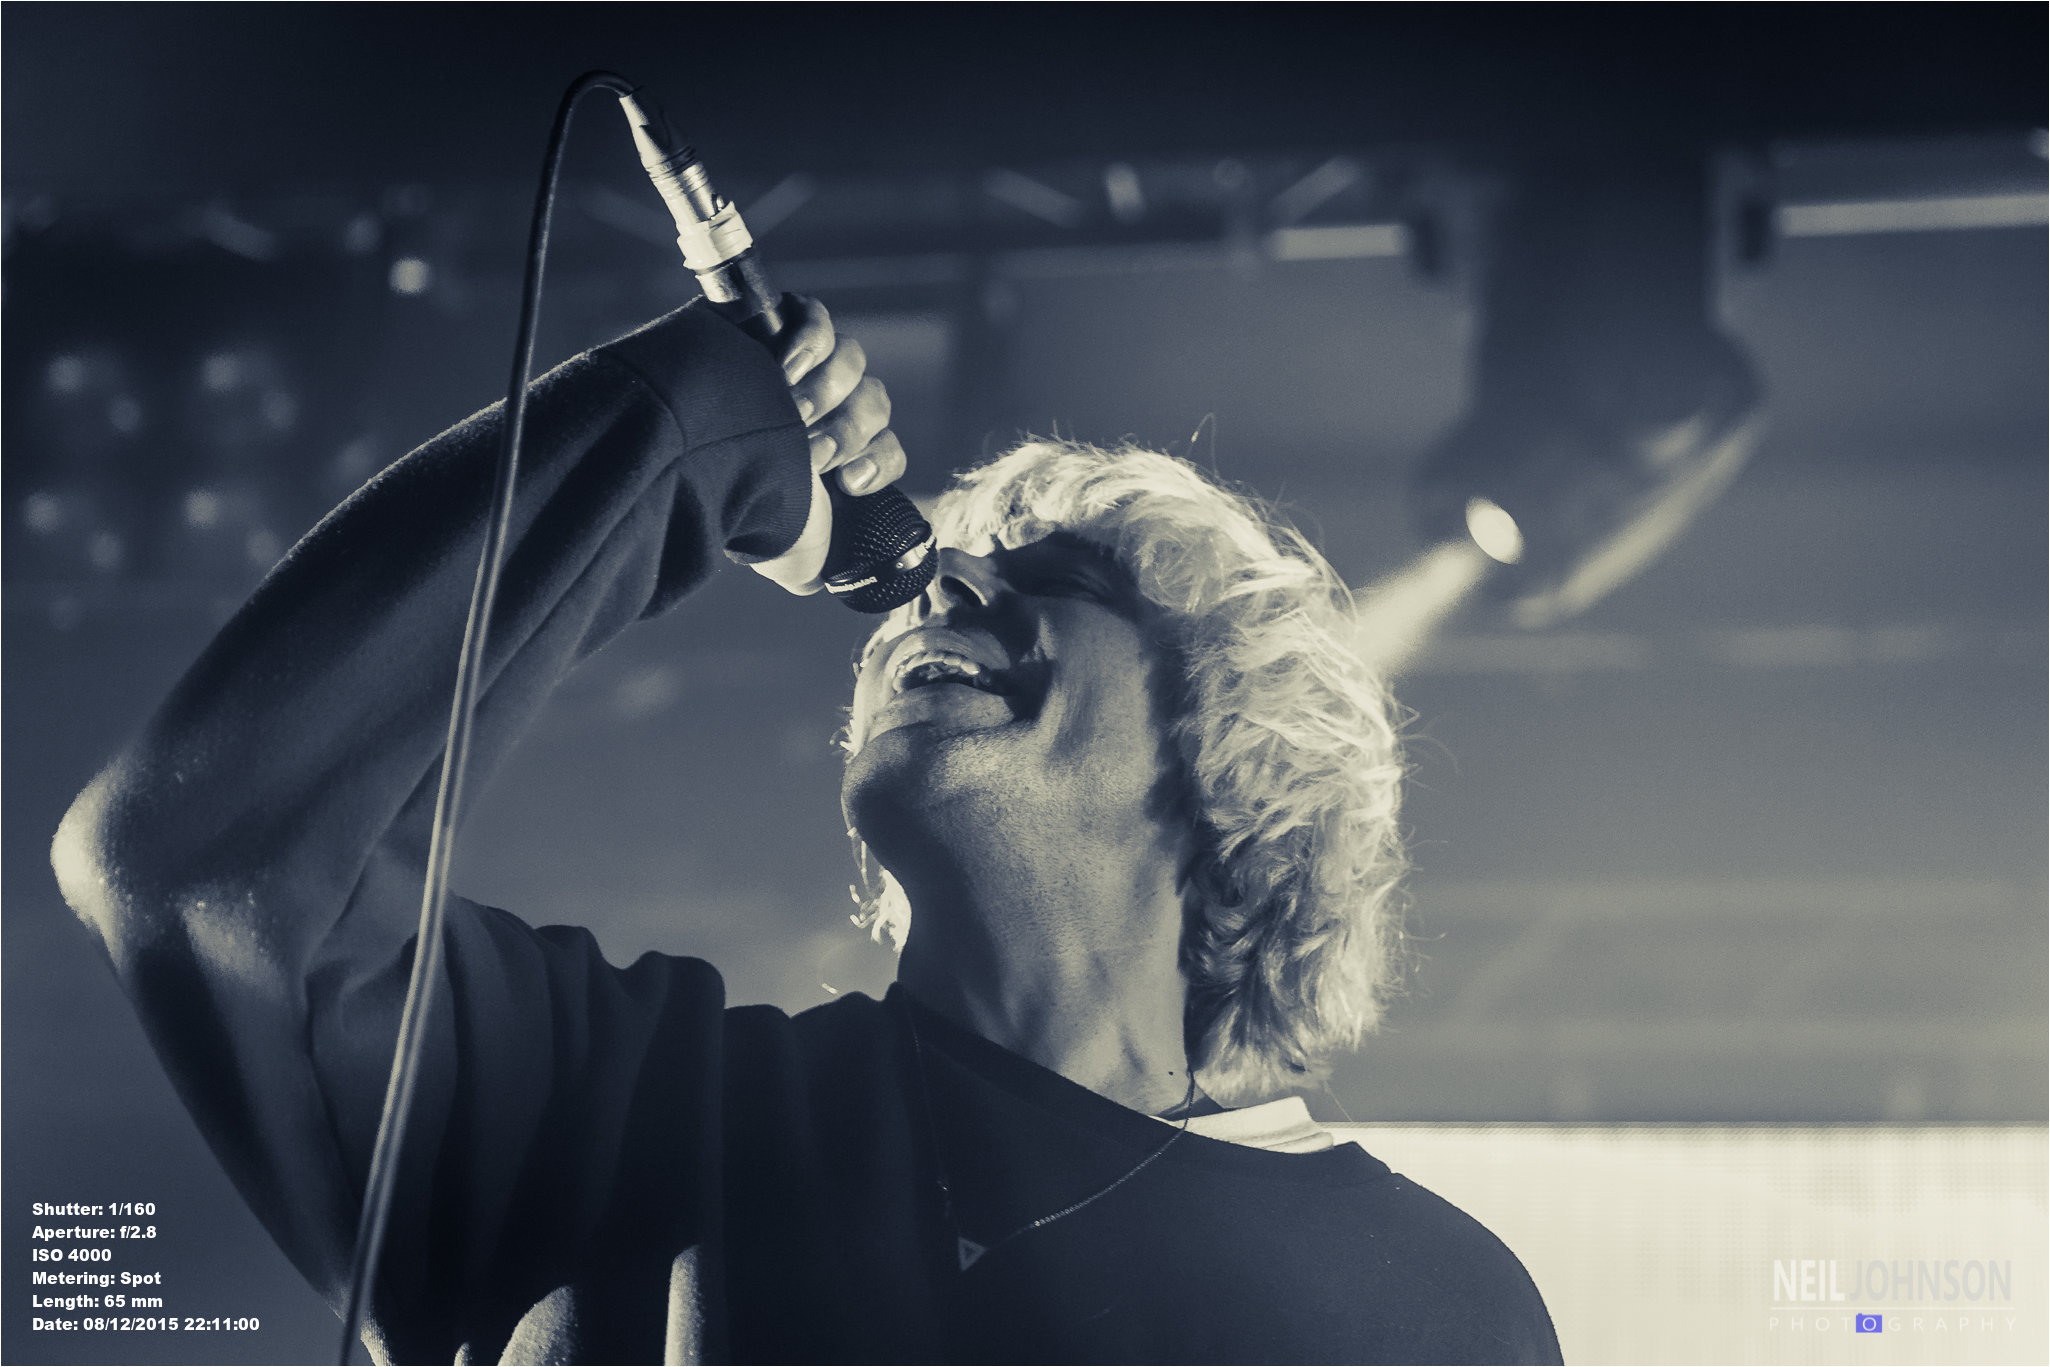 The Charlatans, Tim Burgess